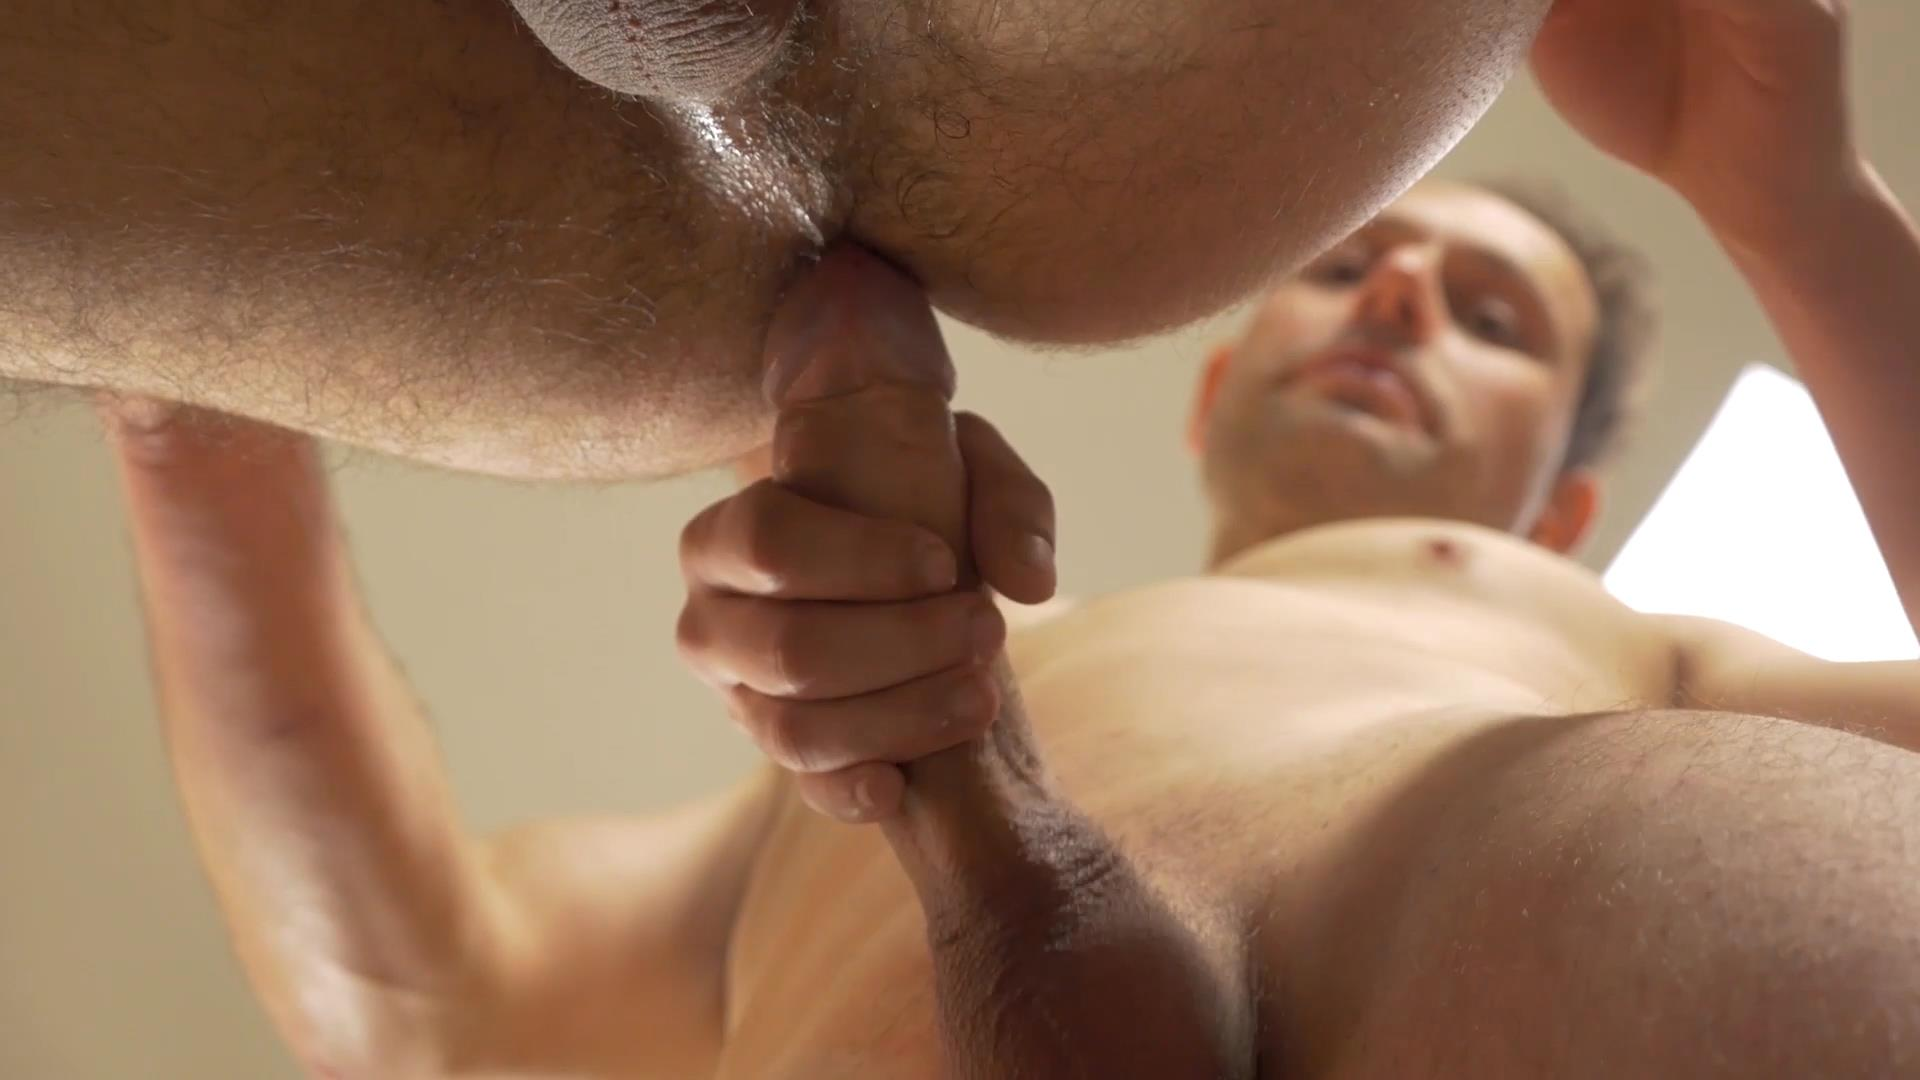 Bareback-Me-Daddy-Oscar-Hart-Priest-Fucks-Bareback-Amateur-Gay-Porn-13 College Boy Gets Fucked Bareback By An Older Priest With A Big Uncut Cock